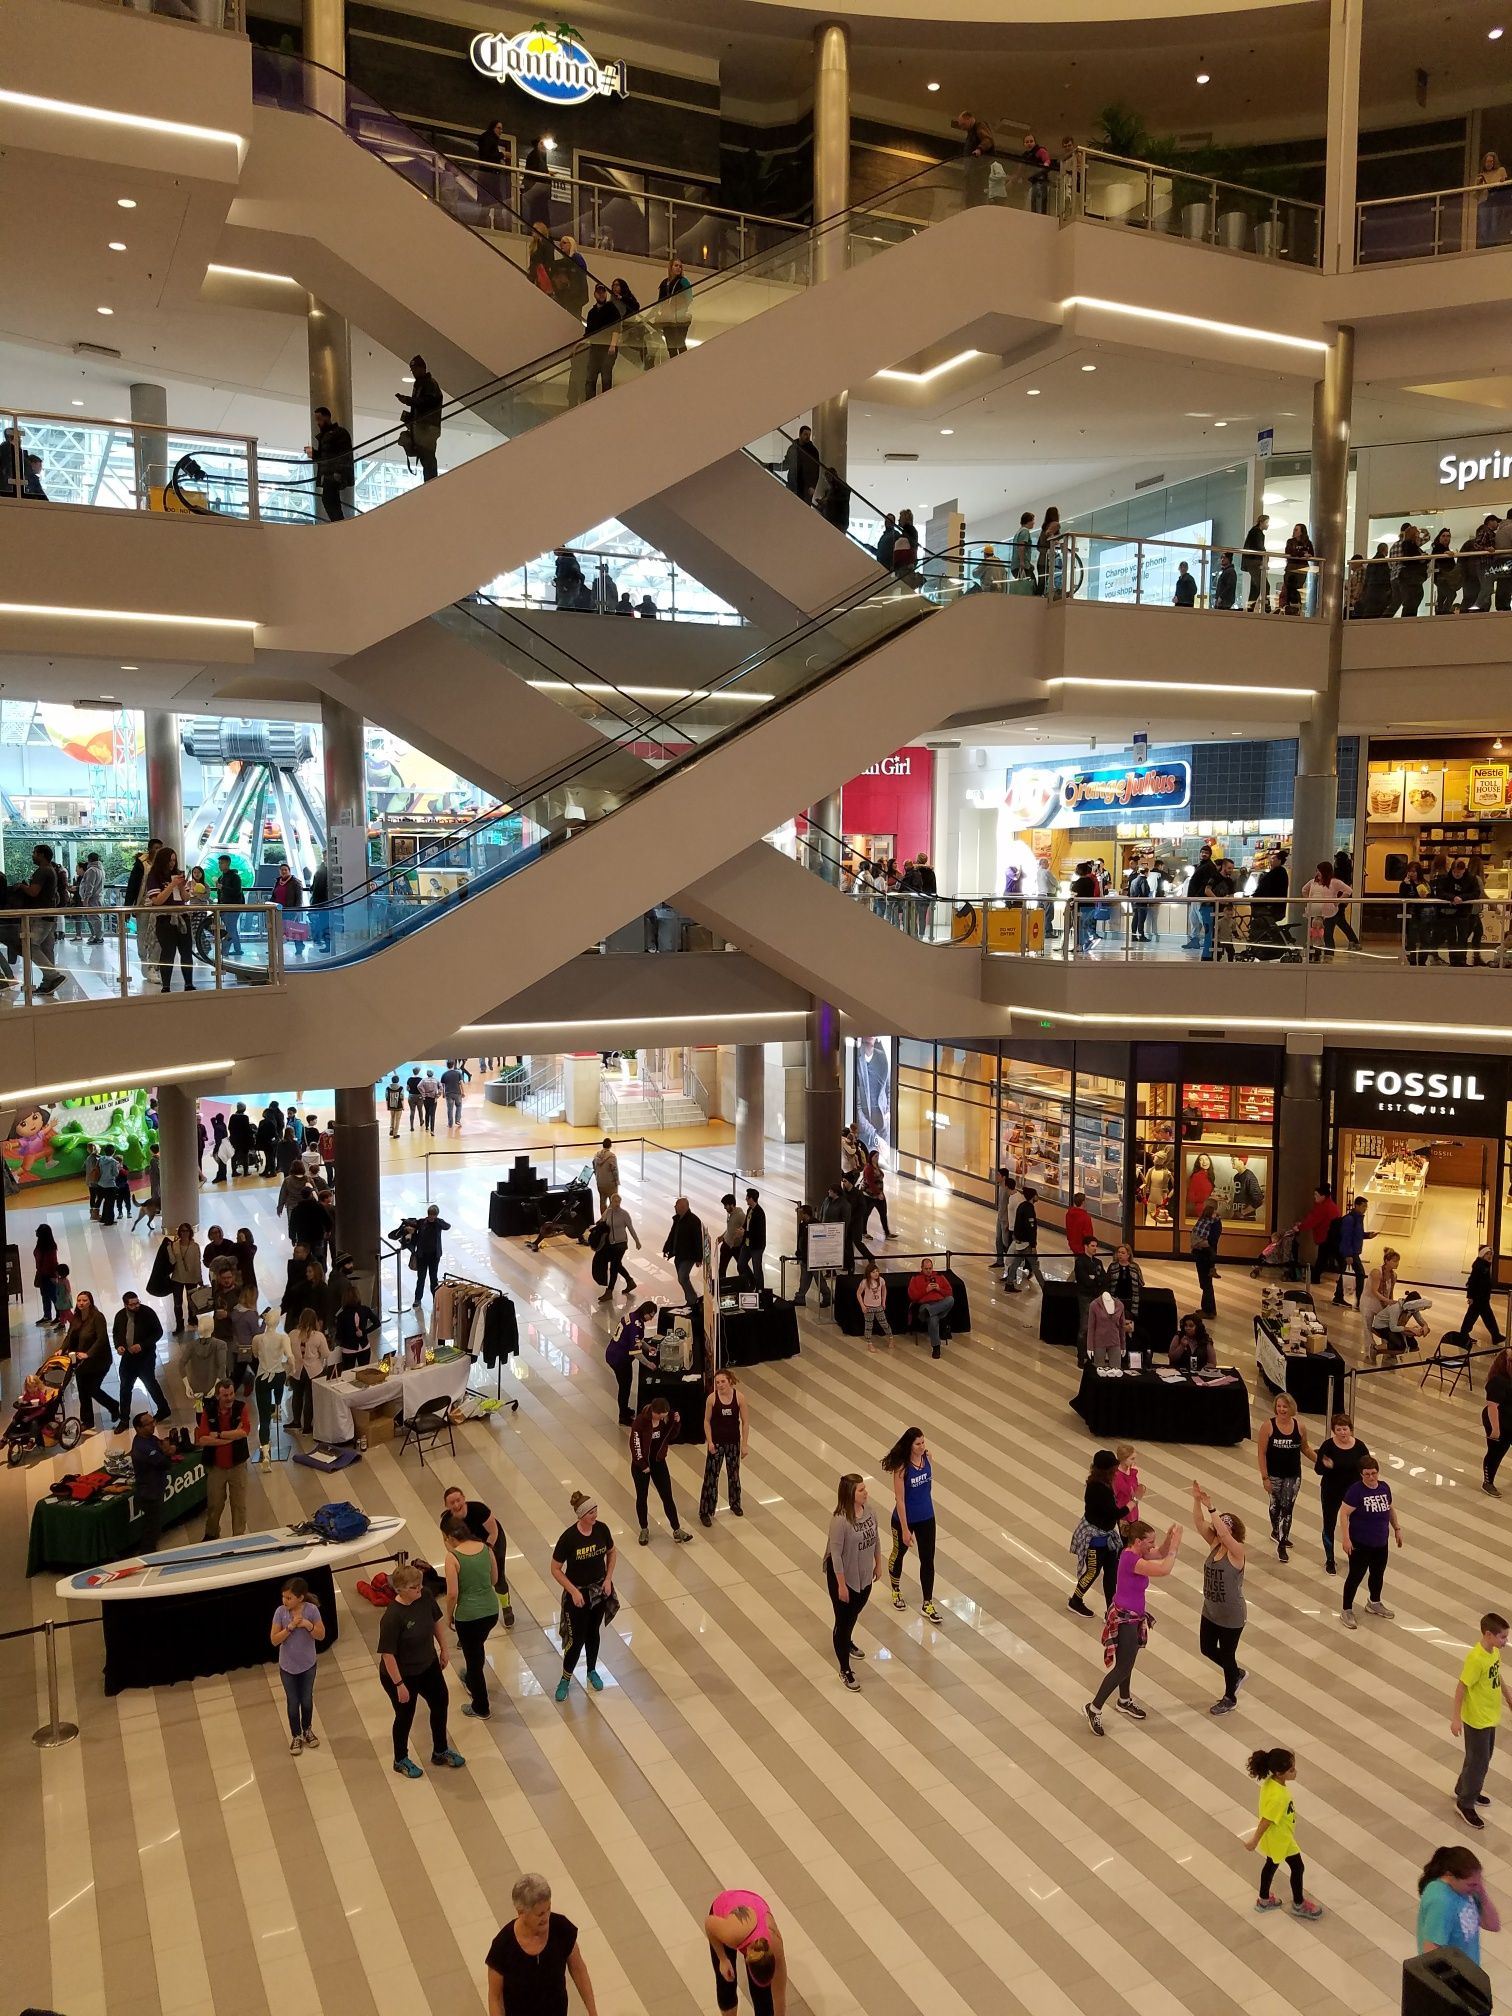 Gest Mall In America With